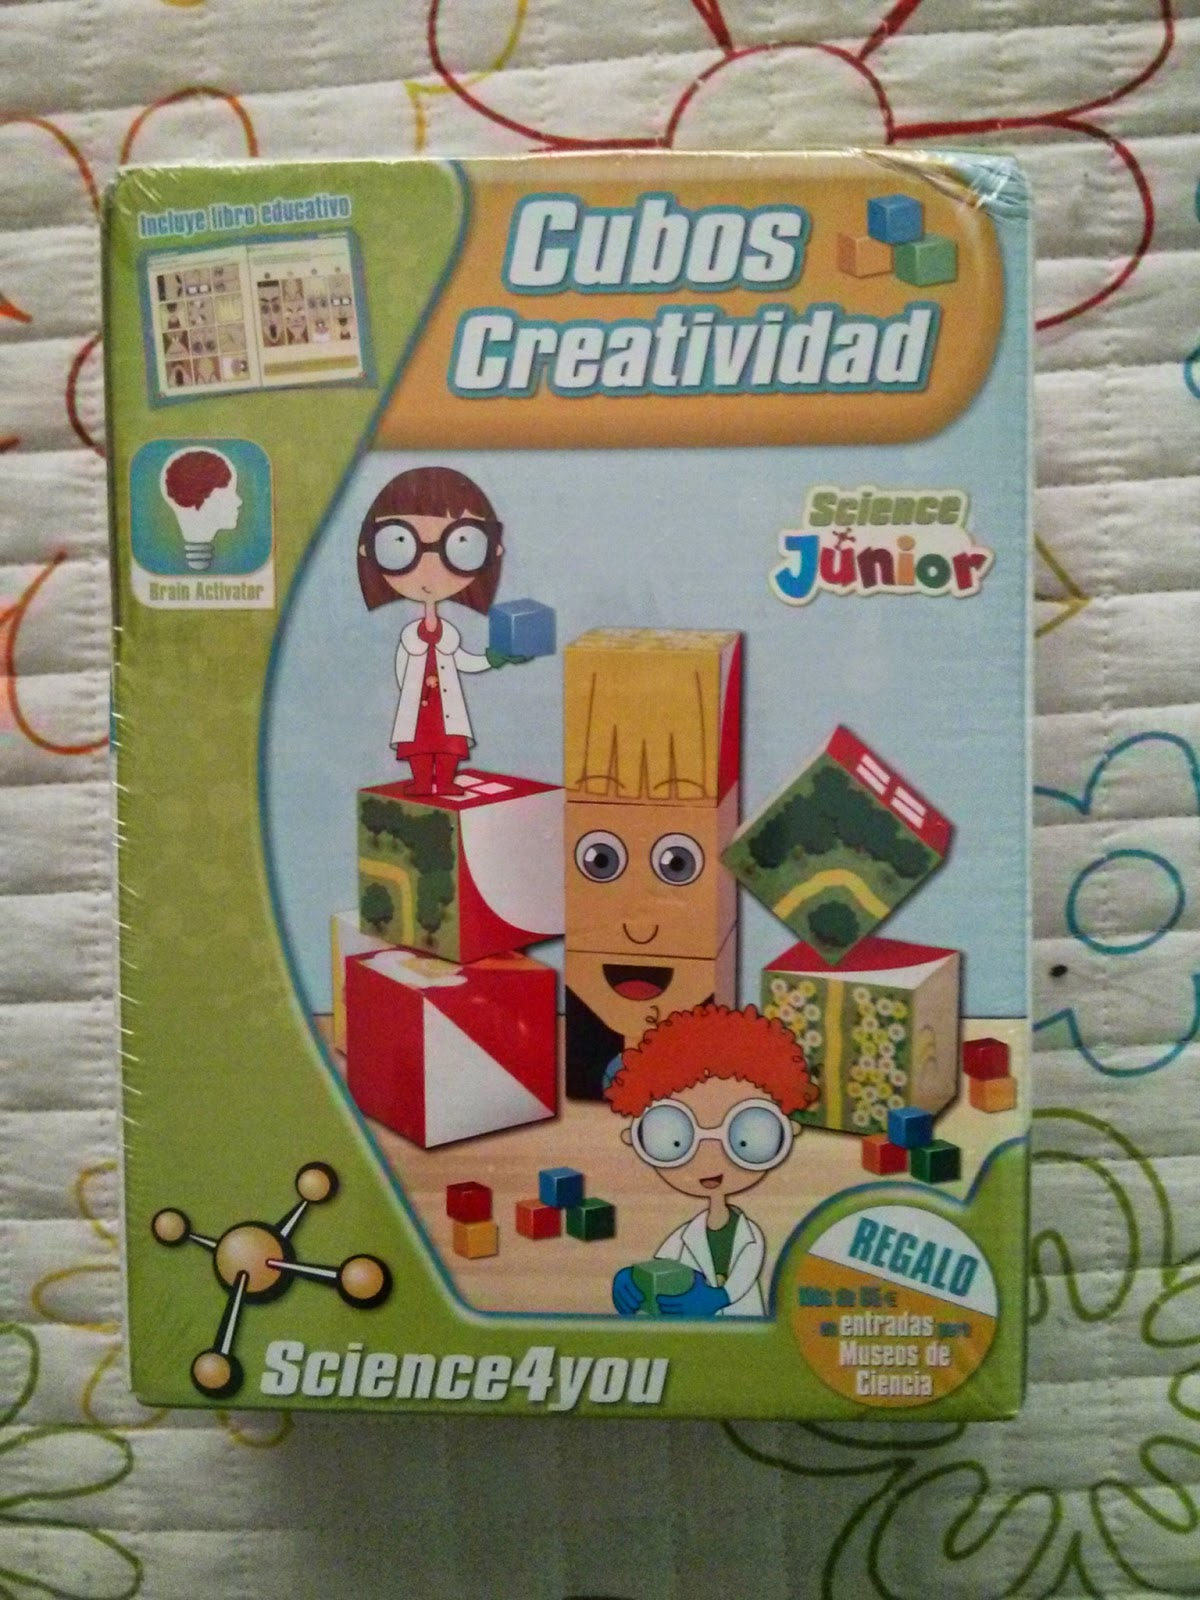 Cubo Científico sciencie4you